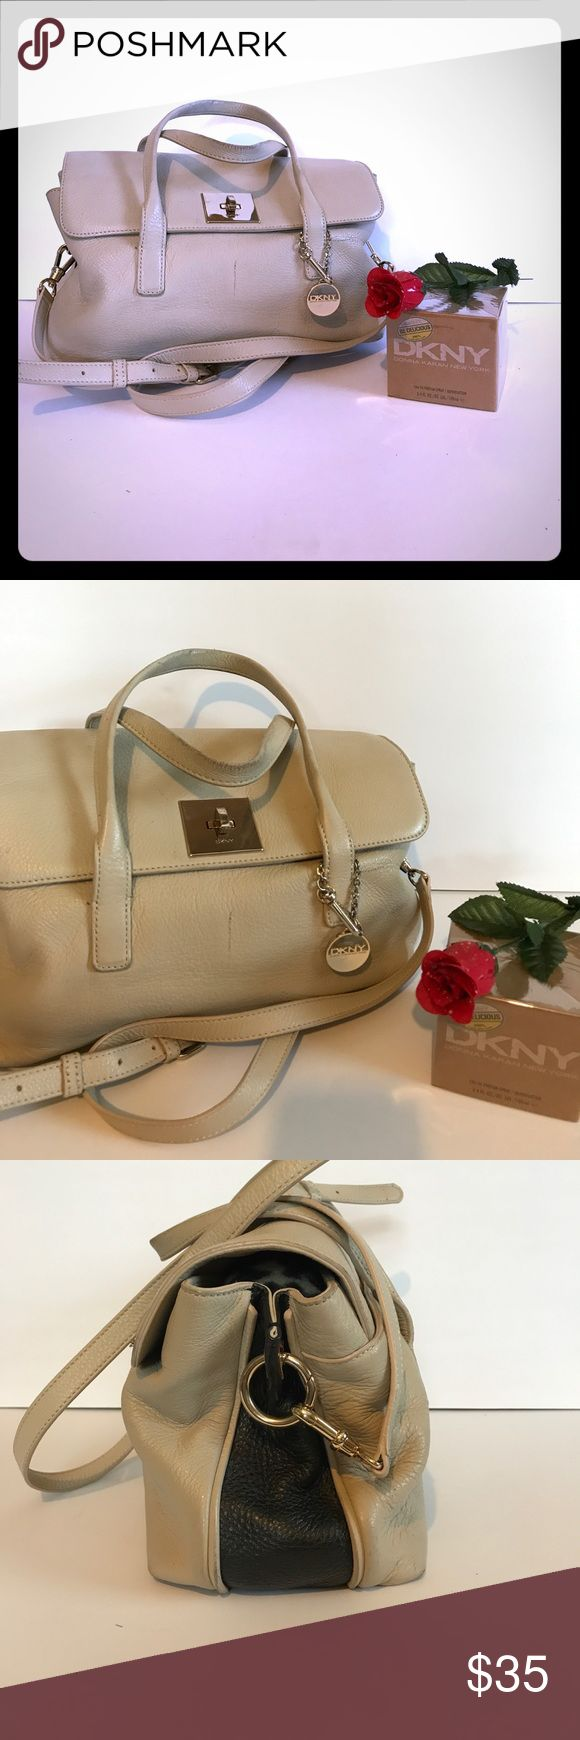 DKNY Handbag Cute cream/black Handbag by DKNY. Gold-toned hardware is stamped with DKNY authentication, signature lining and removable /adjustable shoulder strap. There are three large inside compartments. two have magnetic closures and the center is zippered. Two open pockets inside and one small zippered pocket. On the back of the bag there is a open pocket. There is a pen mark on the front of bag/slight wear on the edges of handles, price reflects. Can be used year round, color very…